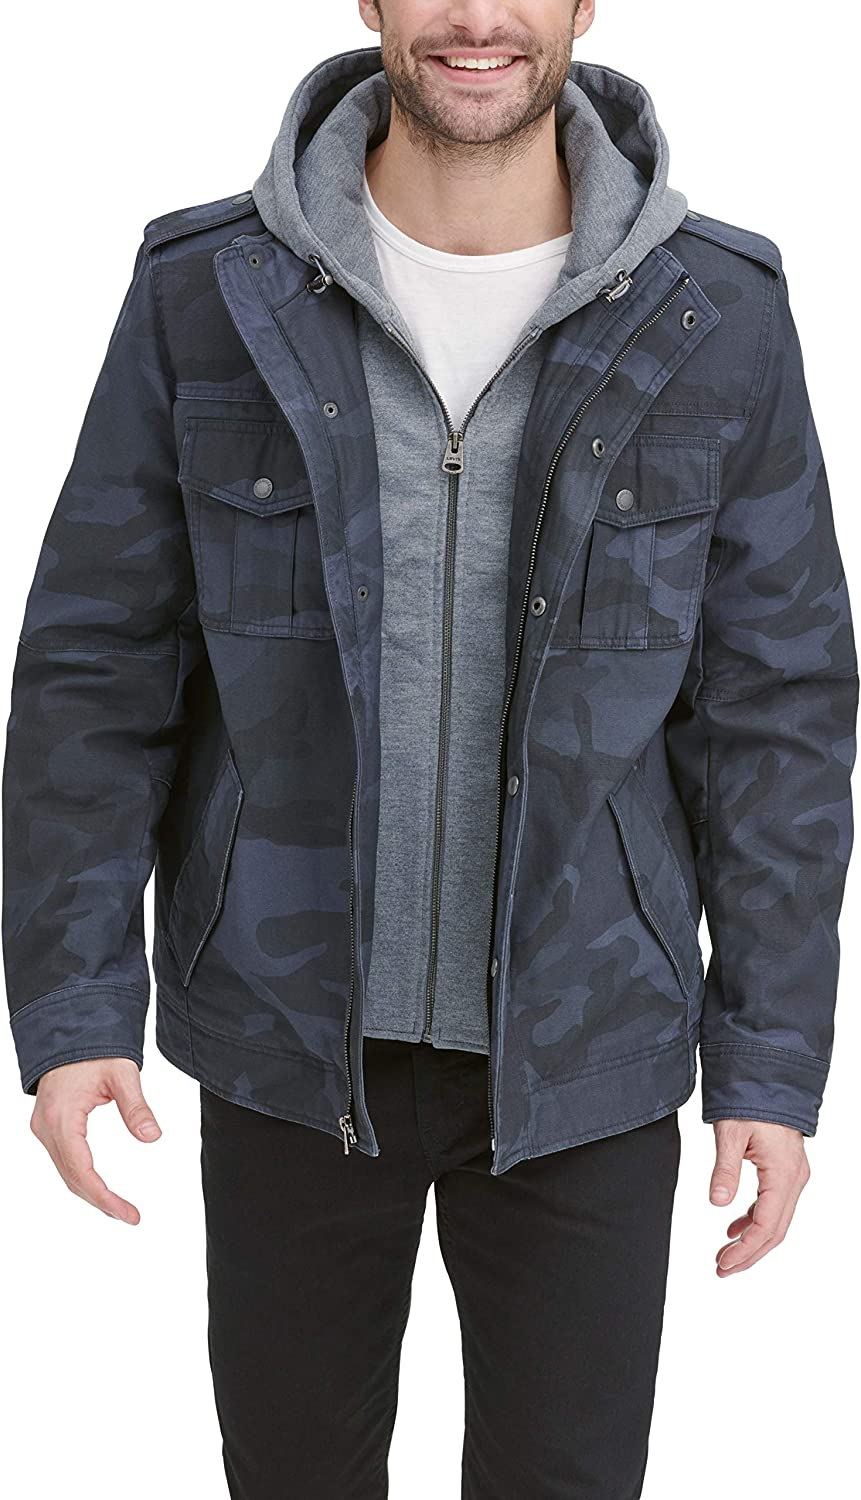 Levi's Men's Washed Cotton Military 2021 model Jacket Arlington Mall Removable Hood with